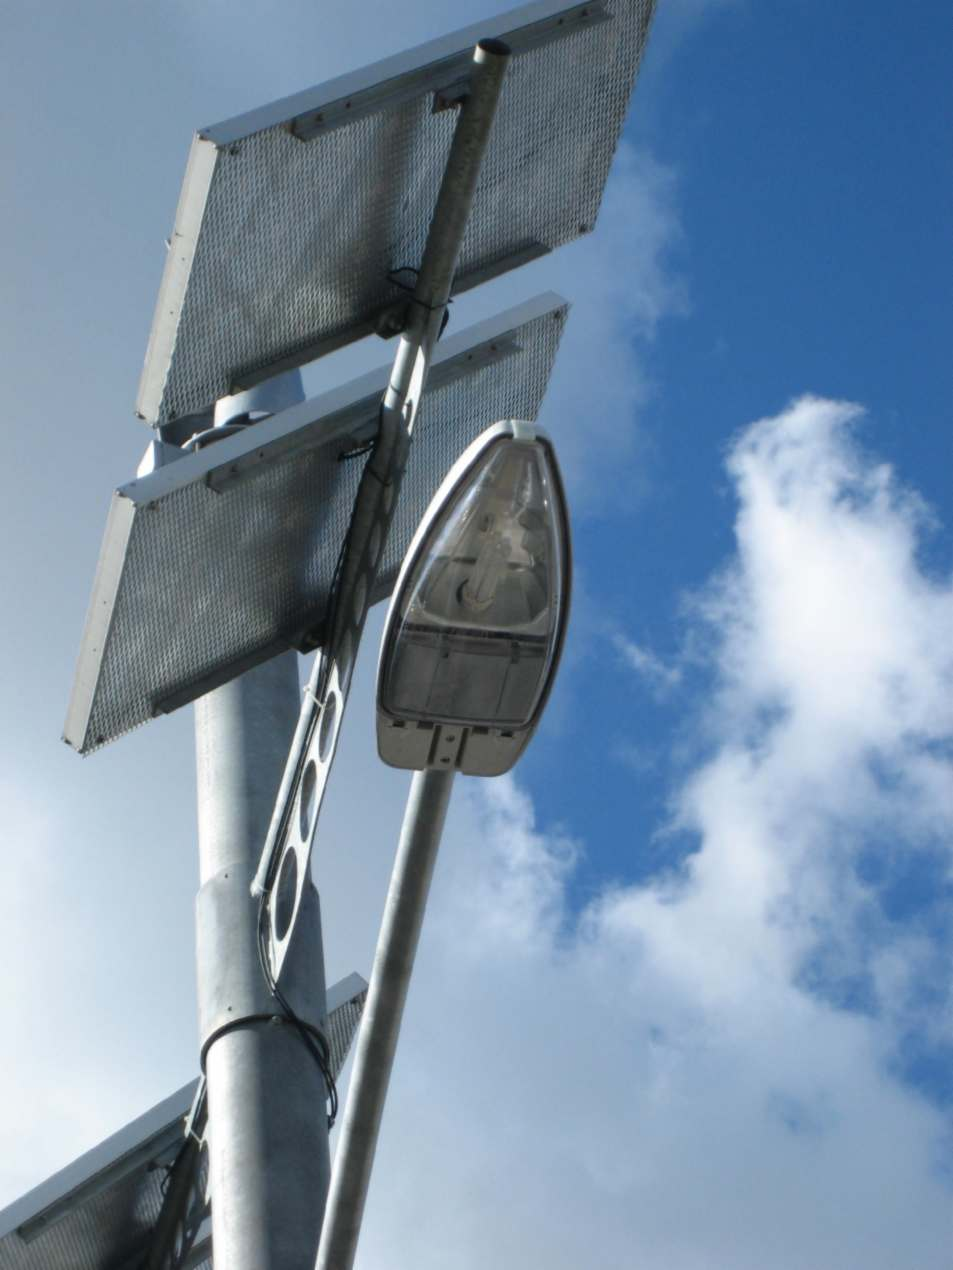 Off-grid street lighting - view of light and PV frame.jpg